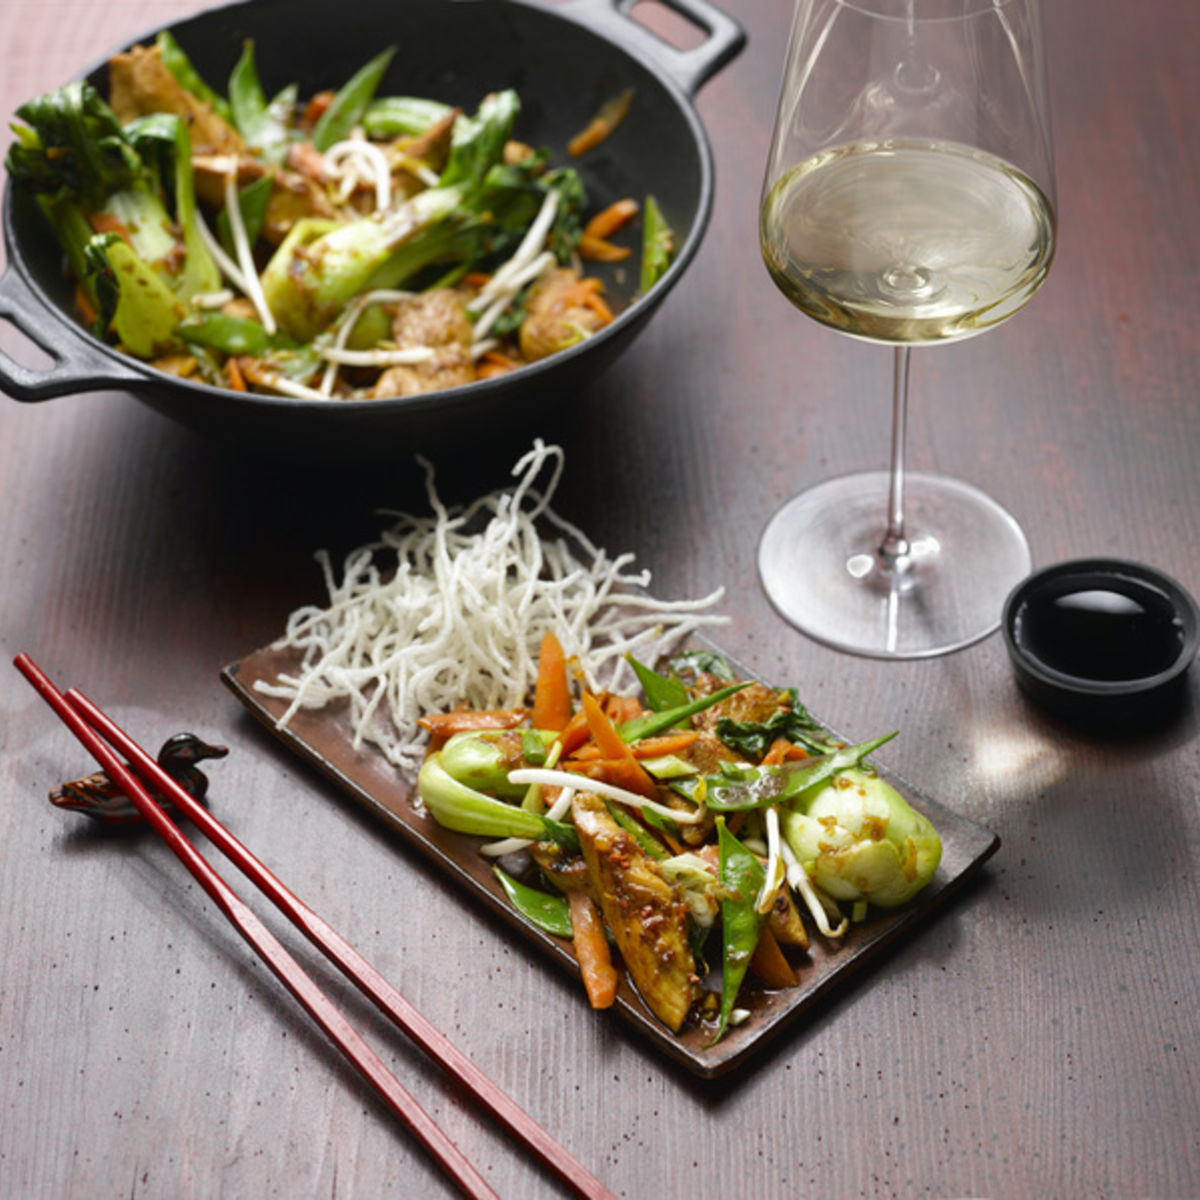 The picture shows a wok dish with a glass of white wine.